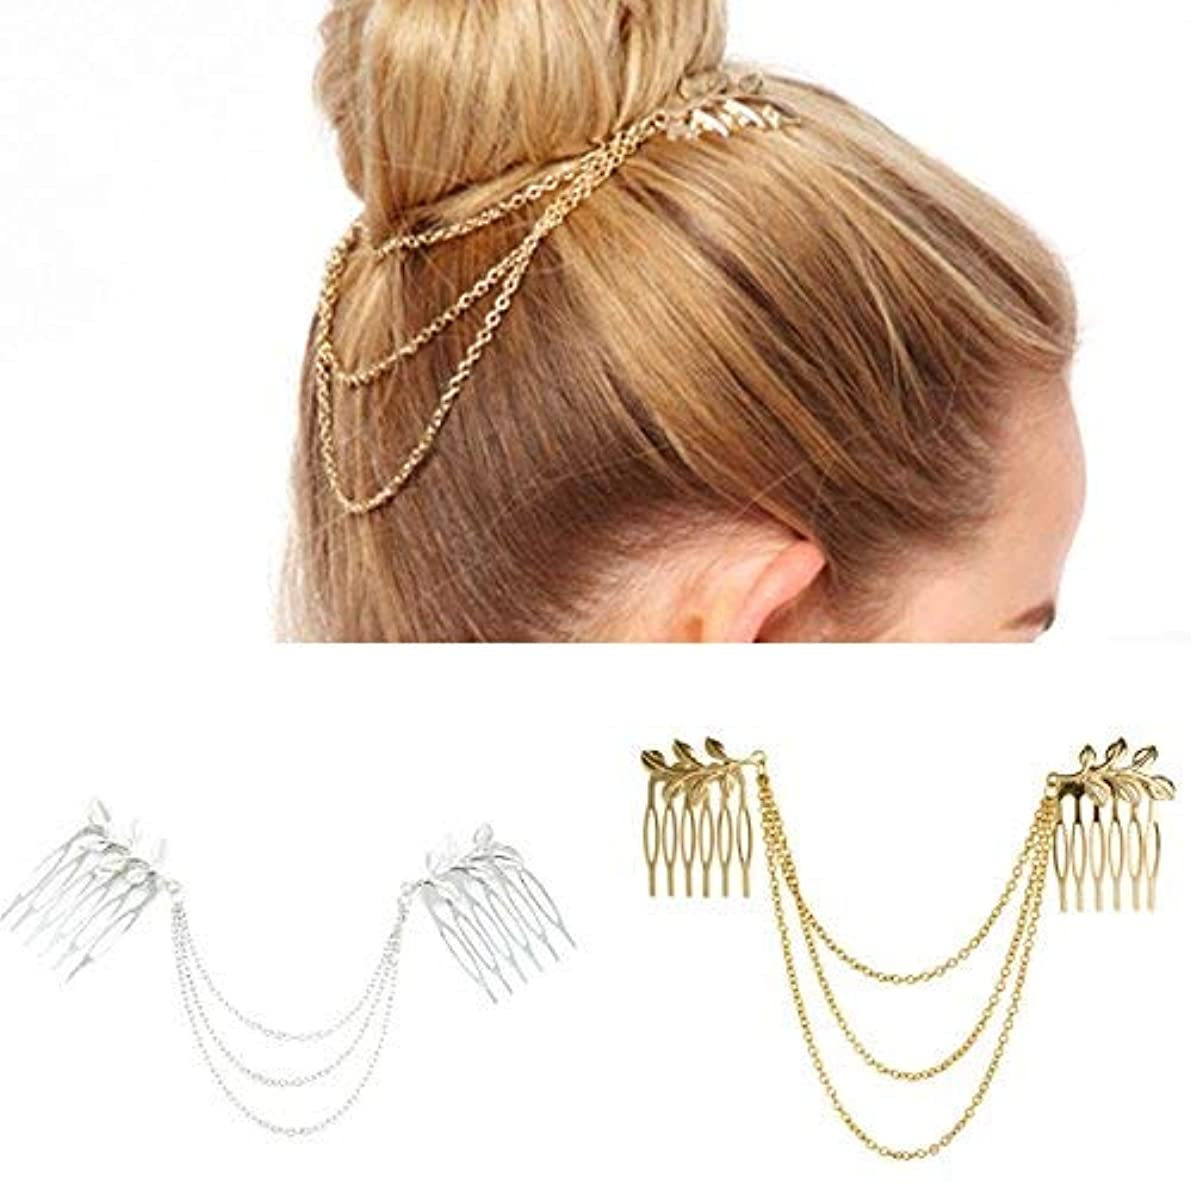 限界不規則性揃えるNumblartd 2 Pcs Women BOHO Chic Metal Leaf Chain Tassel Headband Hair Comb - Fashion Fringe Hair Clip Pins Hairpin...